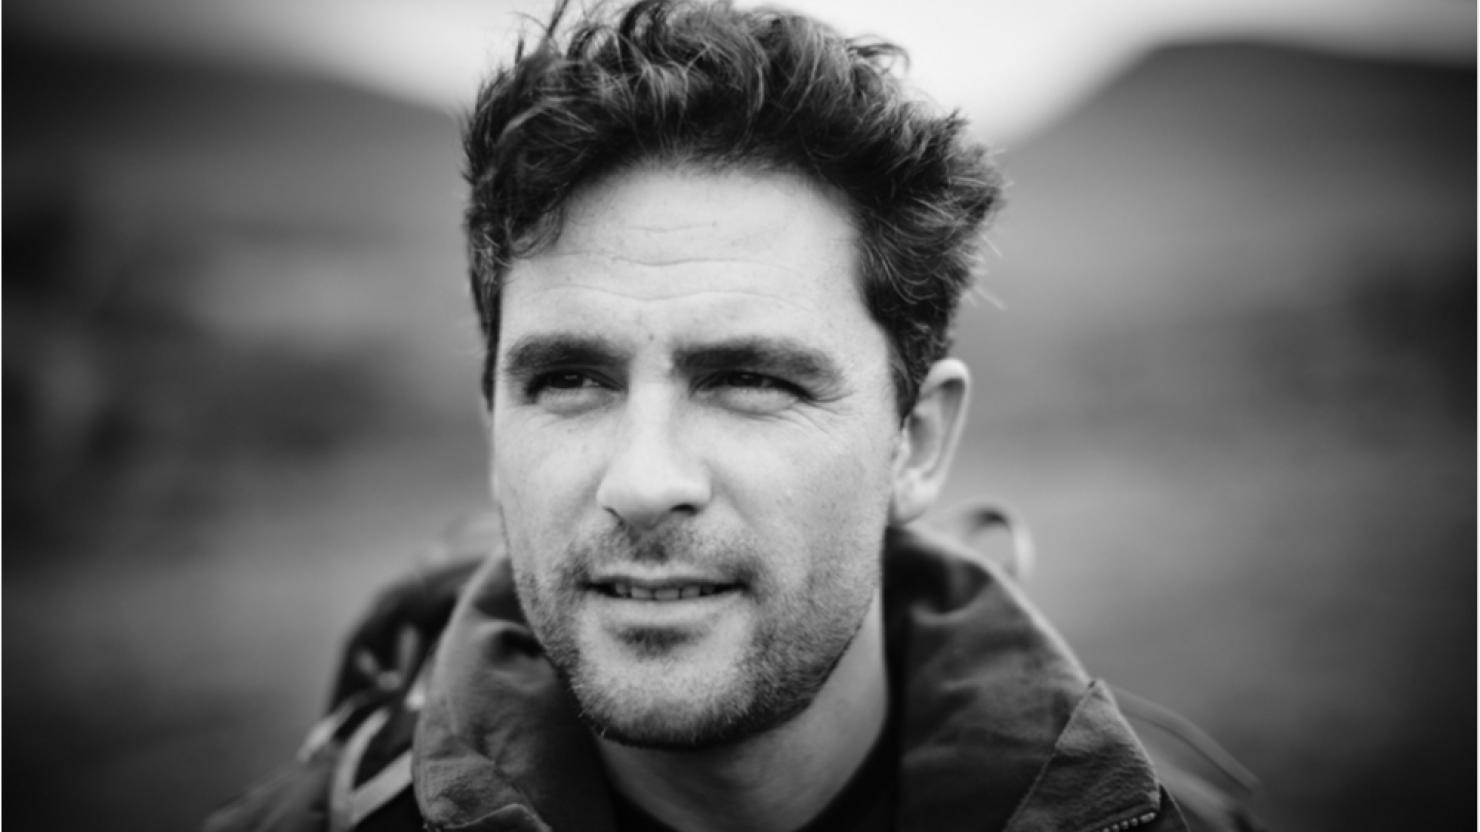 British explorer Levison Wood makes Muscat pit stop during Arabian adventure